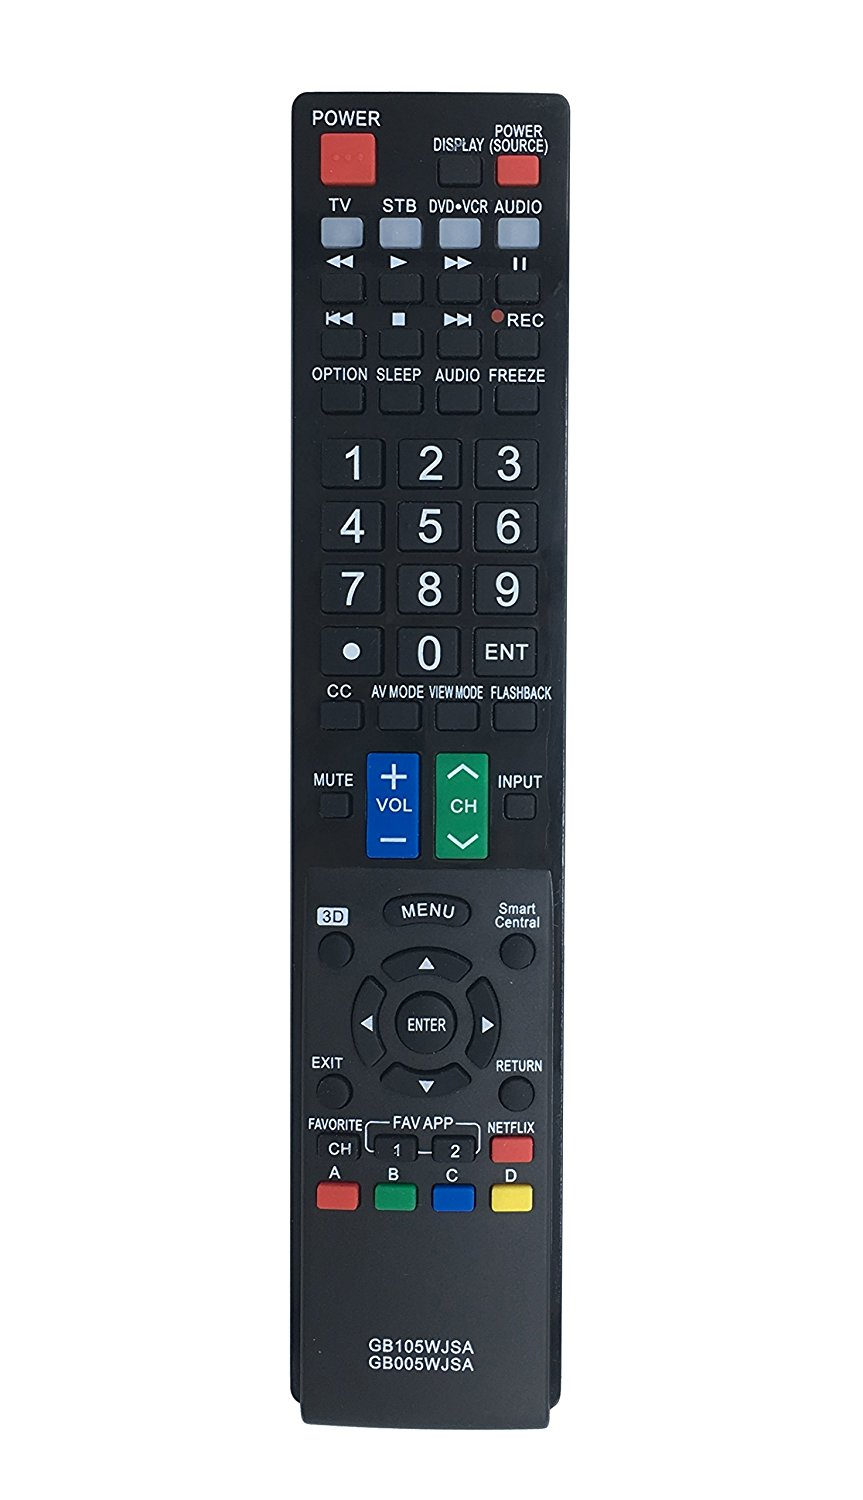 ECONTROLLY New Replaced Remote GB005WJSA for SHARP AQUOS TV GB004WJSA GA935WJSA GA890WJSA GB105WJSA Remote Control